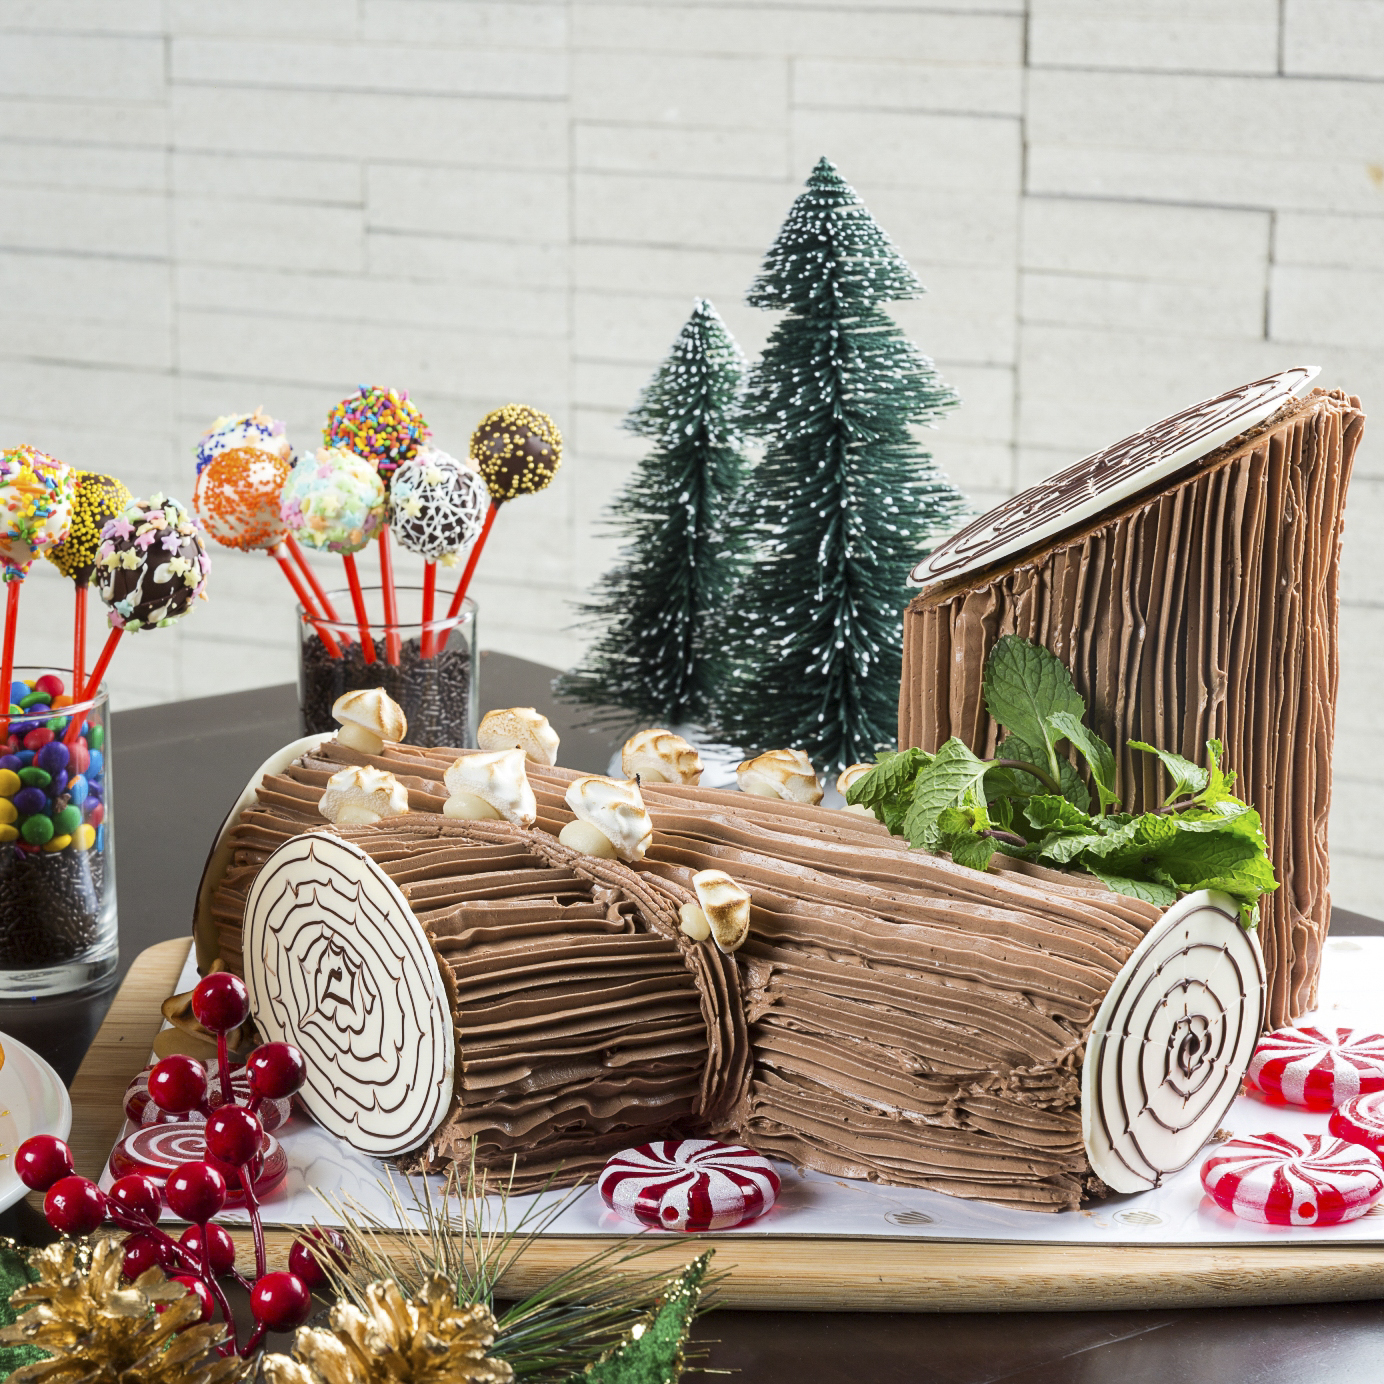 Yule Log Roll and Cake Pops from Richmonde Hotel Iloilo